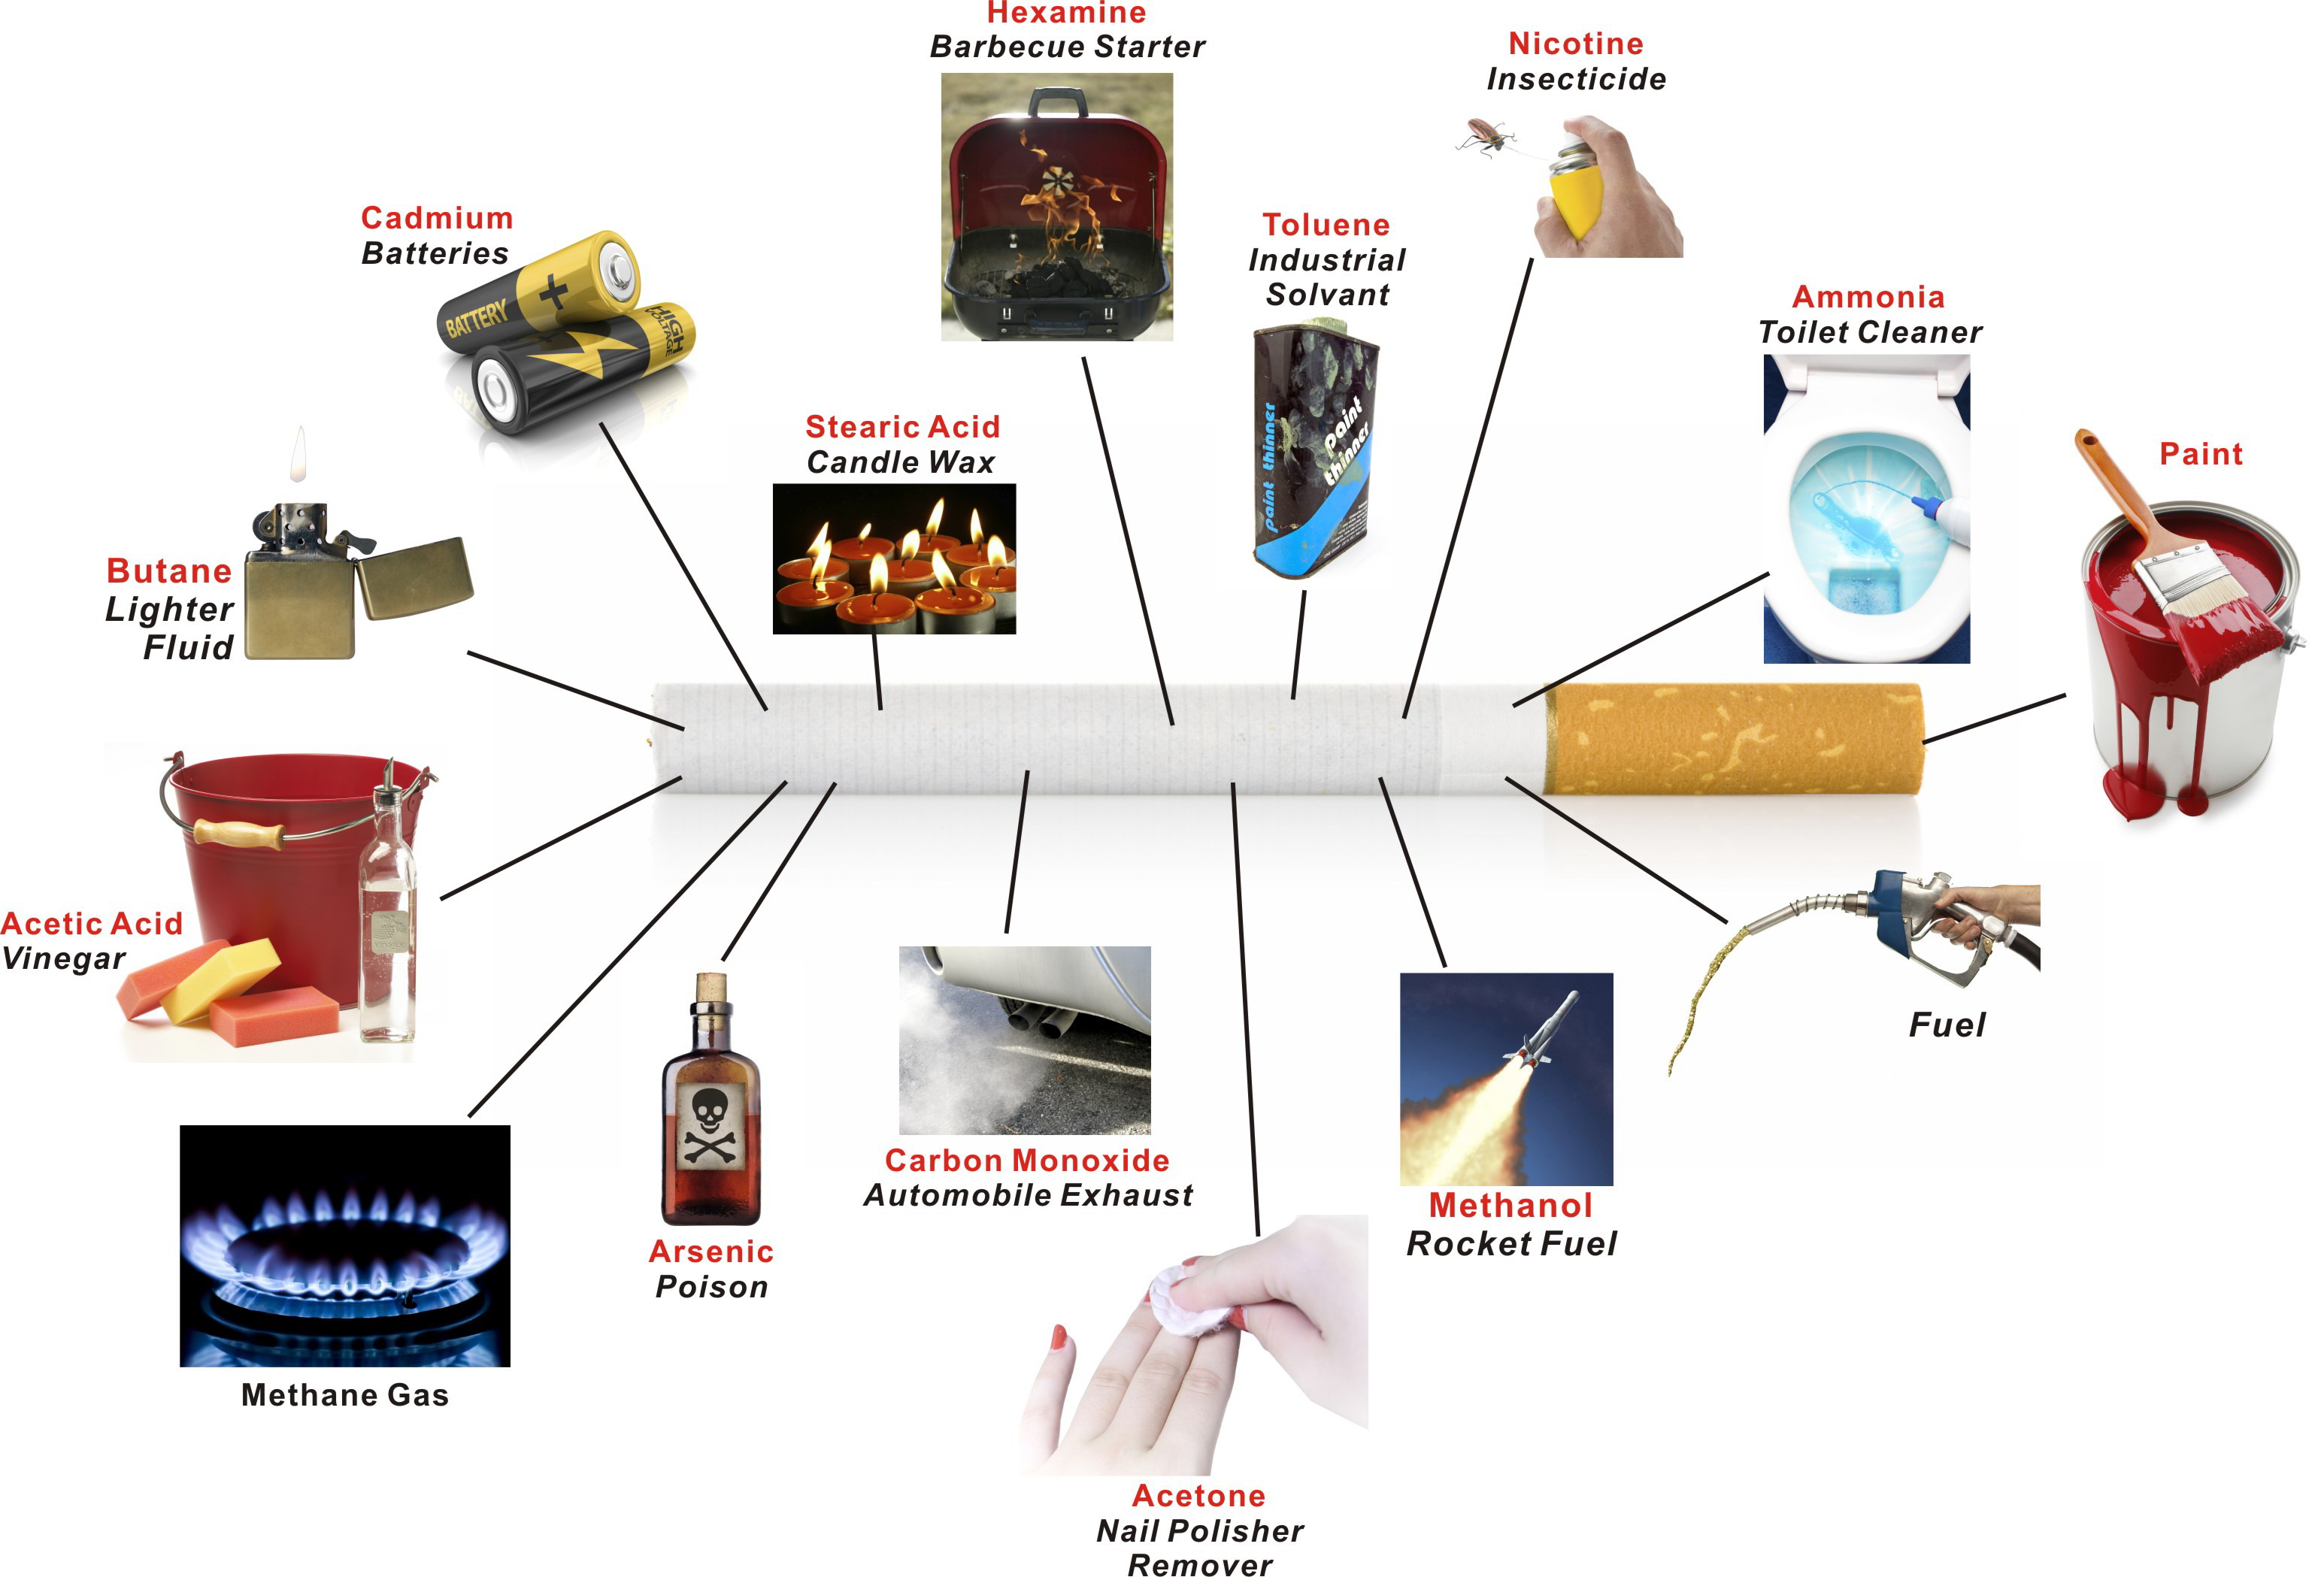 Freedom Quit Smoking Blog Announces News About Additional